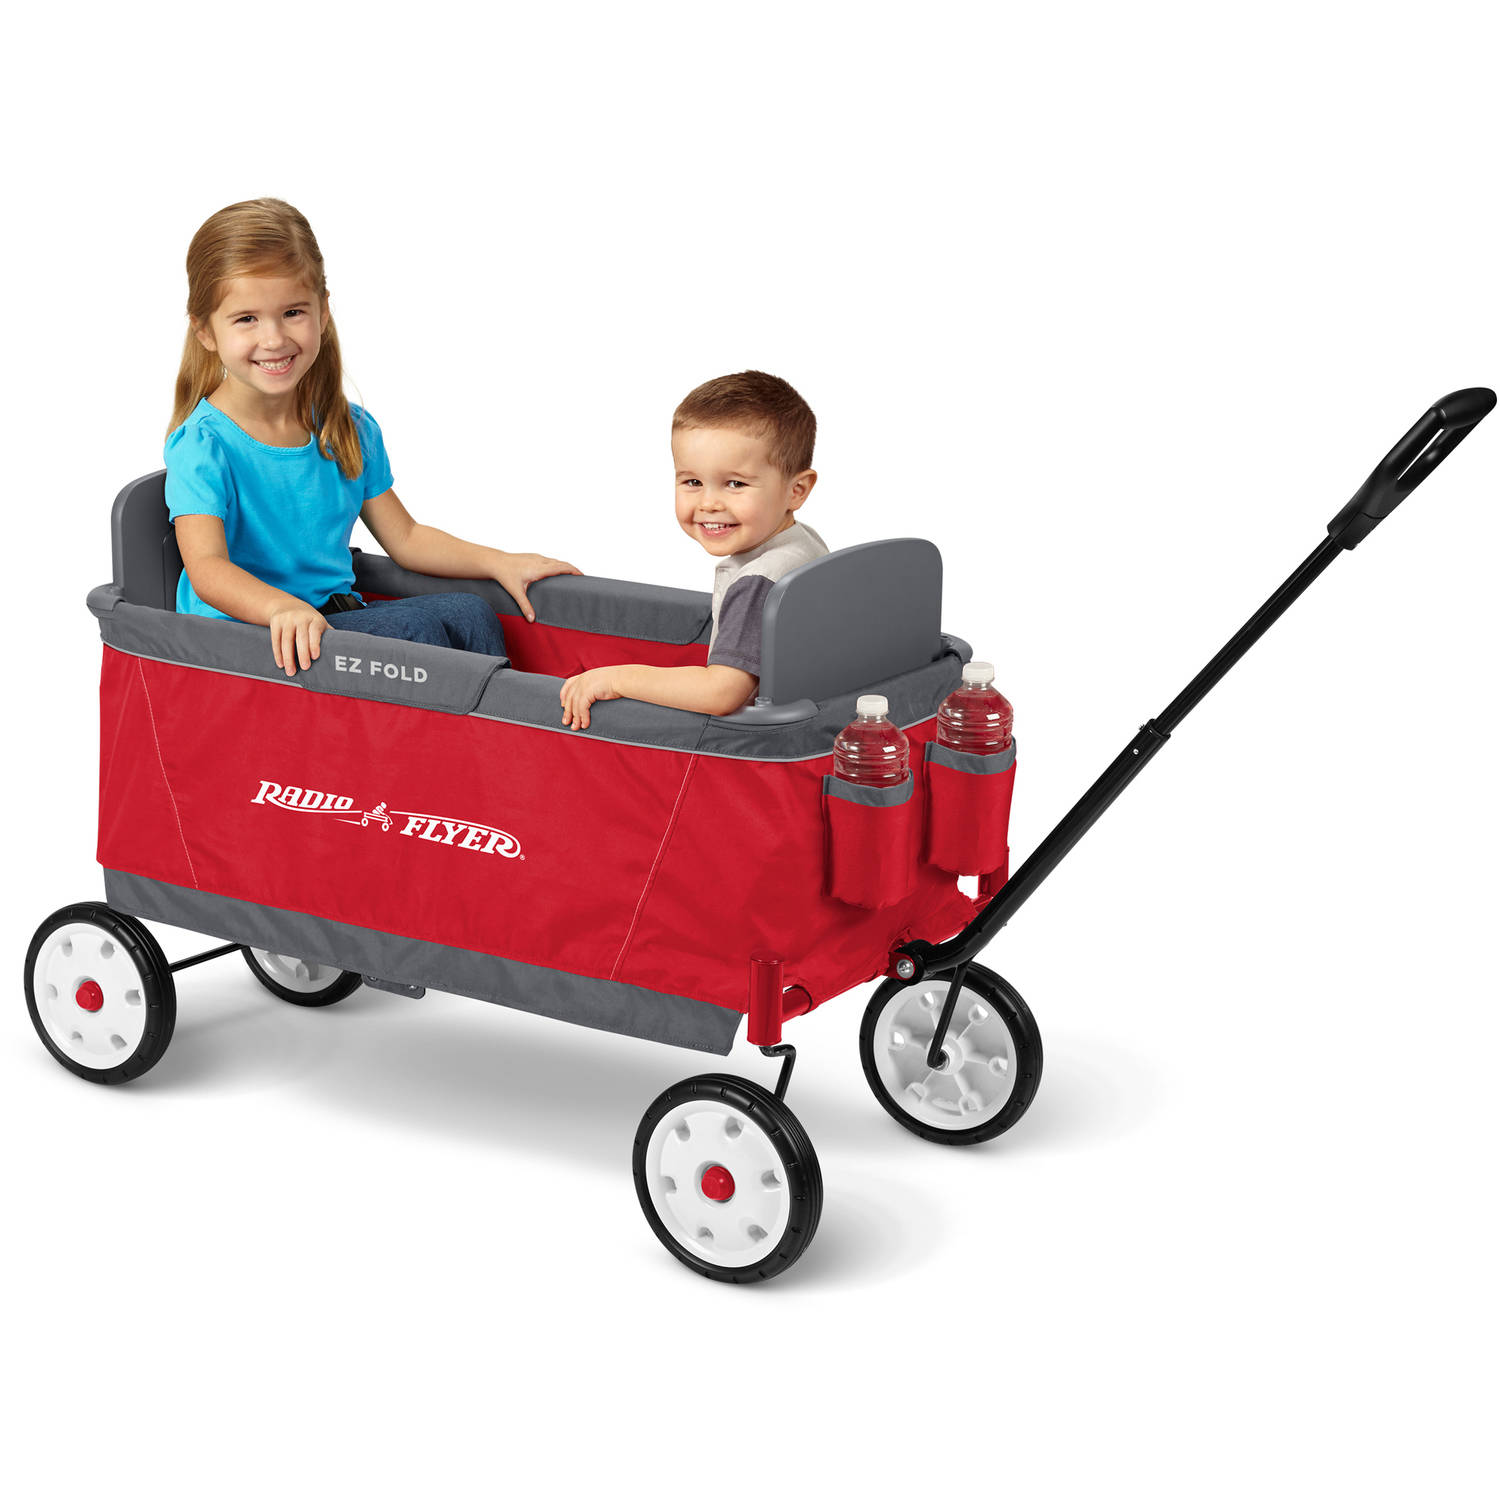 Radio Flyer EZ Fold Wagon for Kids